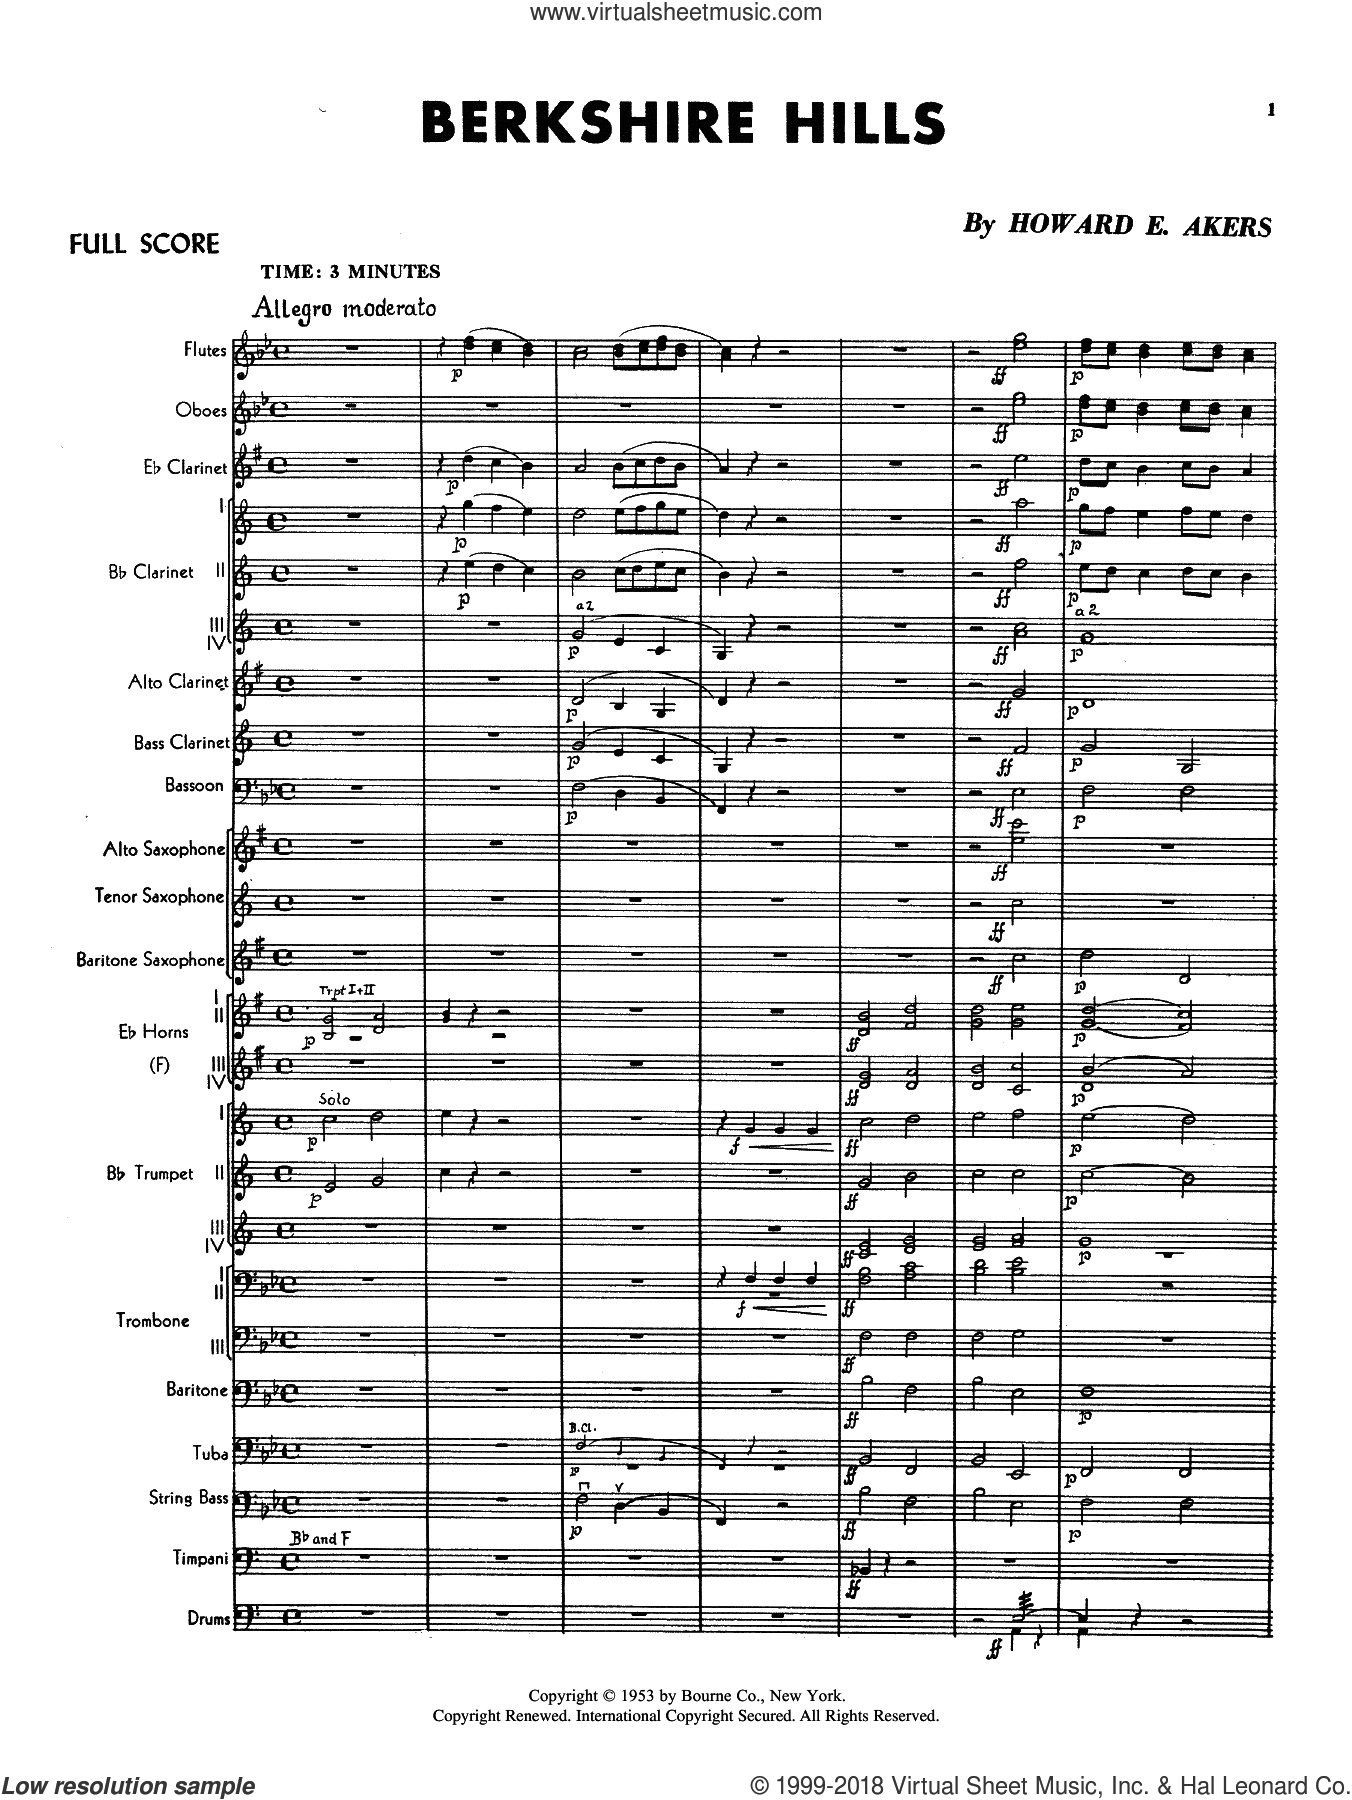 Berkshire Hills (COMPLETE) sheet music for concert band by Howard E. Akers, intermediate skill level